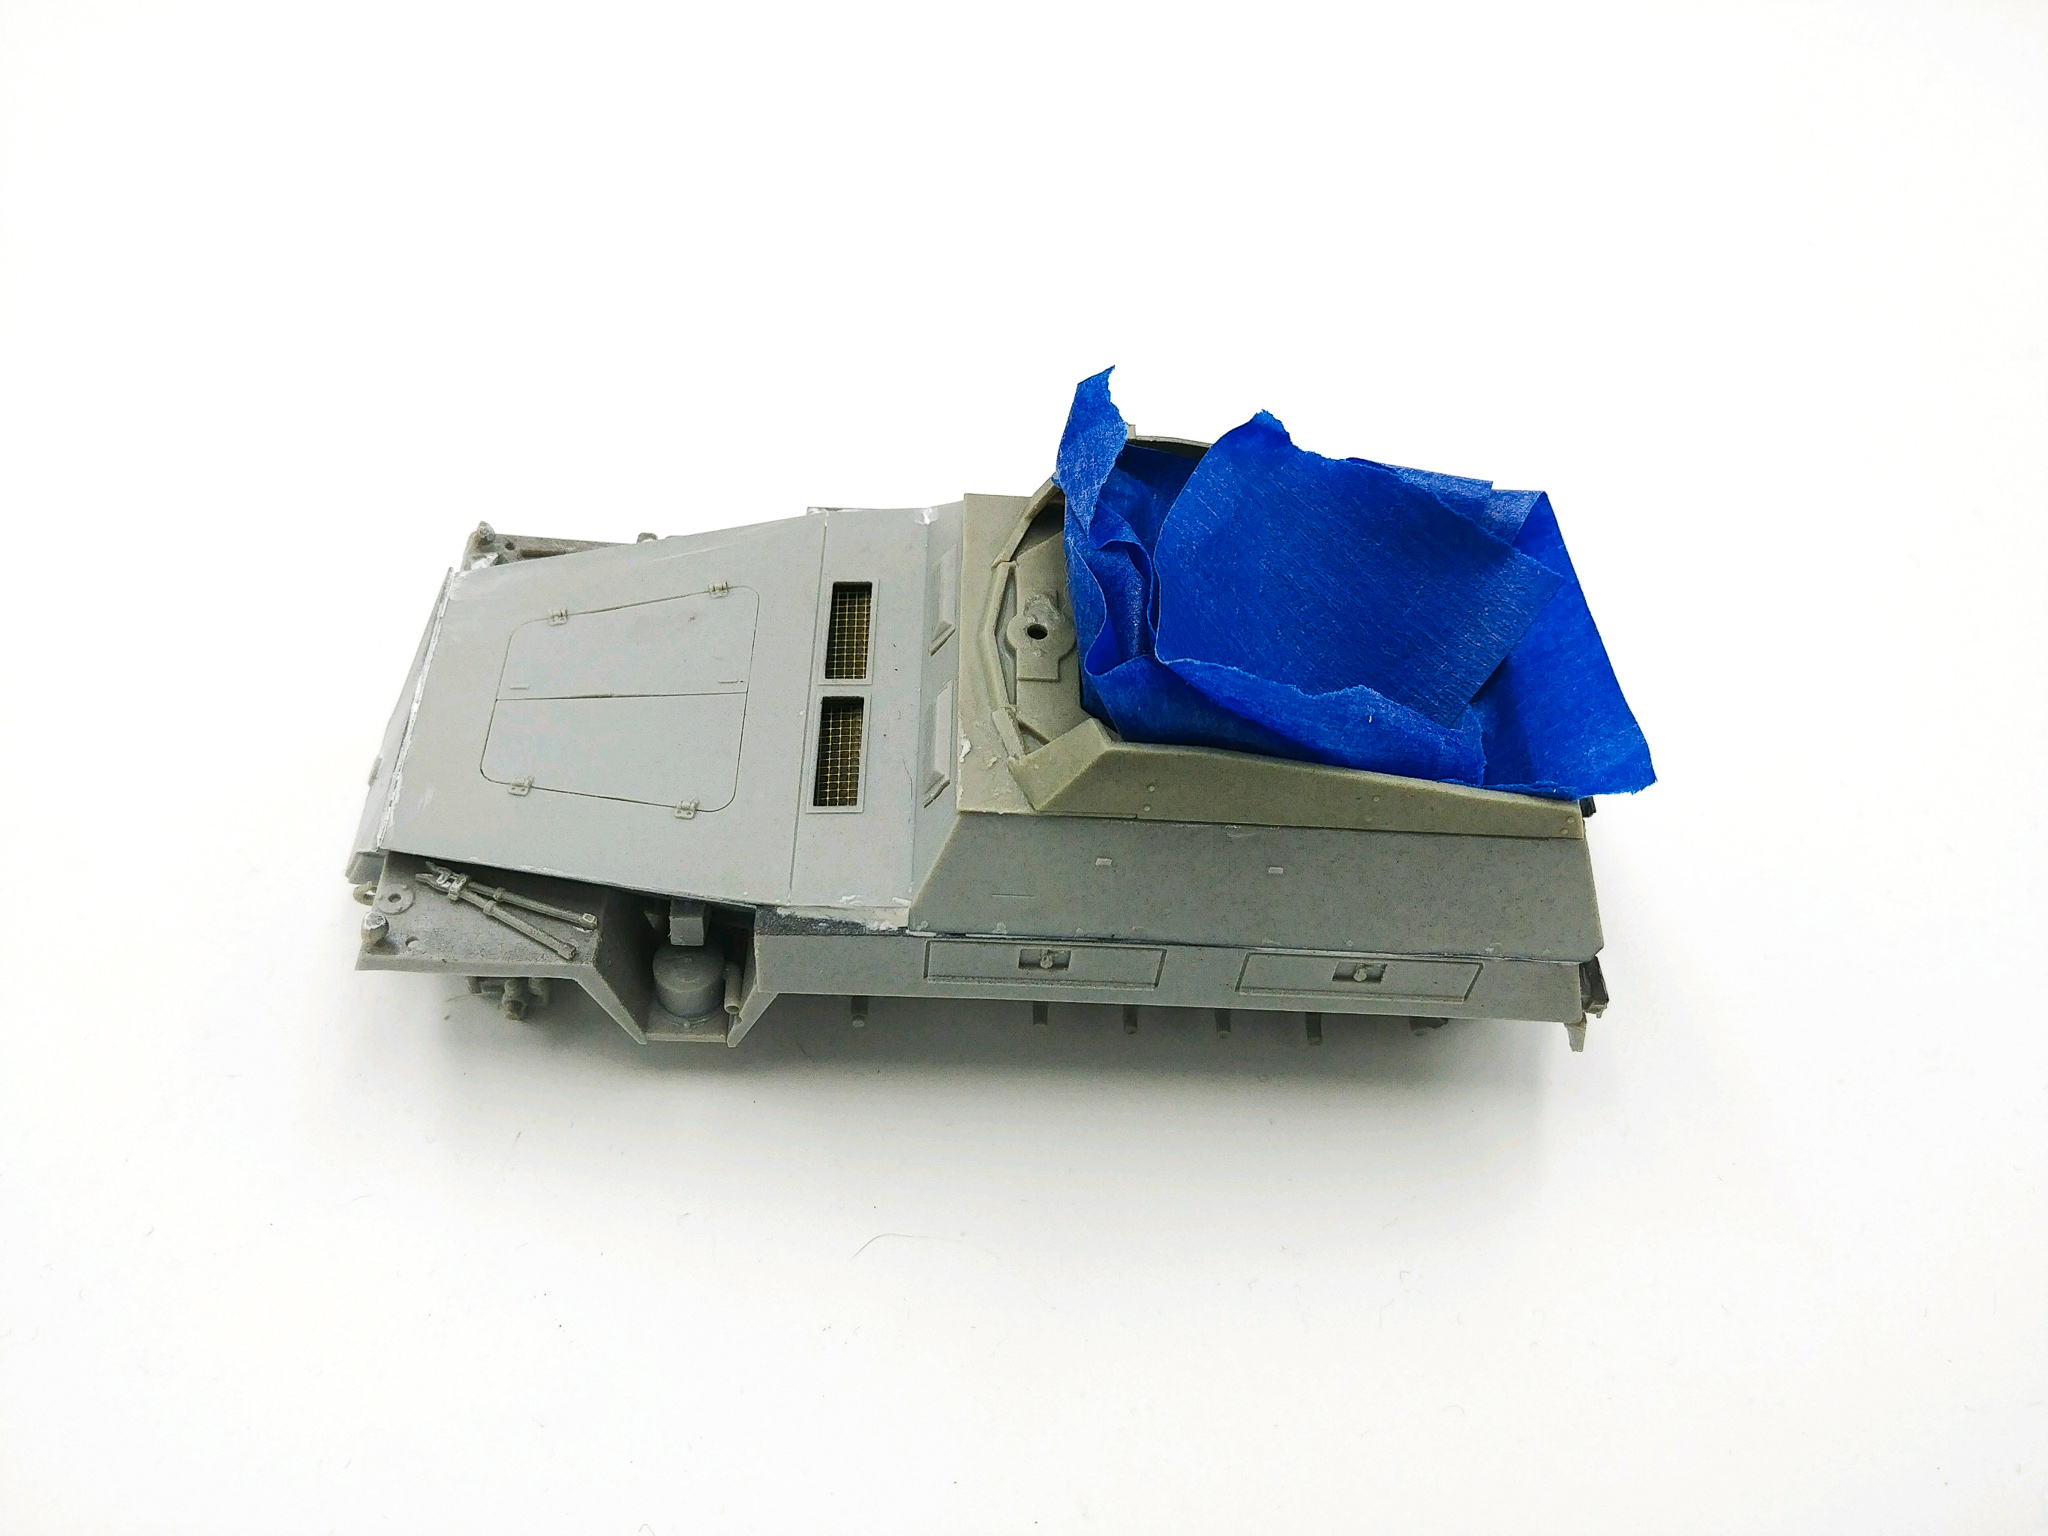 Halftrack_mask